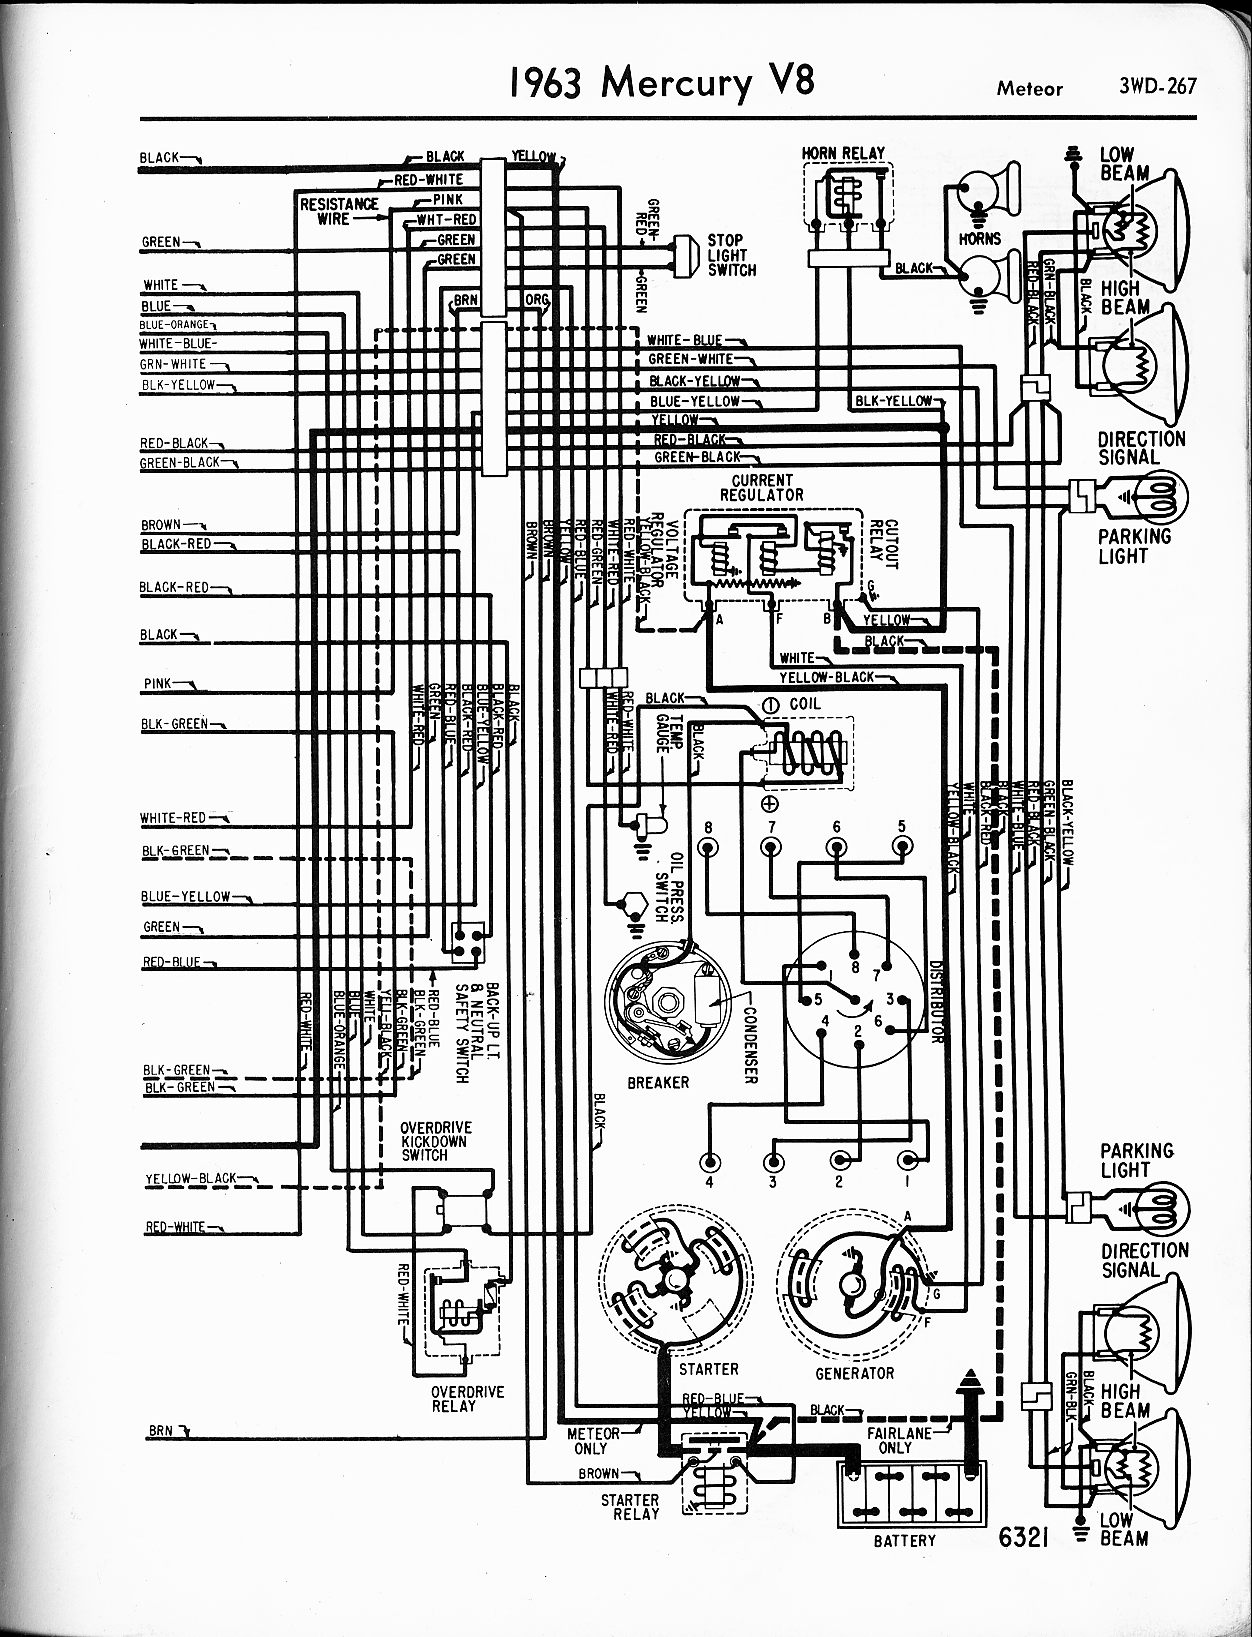 1954 Chevy Truck Documents 47 55 Parking Brake Pedal 1955 furthermore Handmade Written Ignition Switch Wiring Diagram Chevy Drawings Regulator Generators Heater Lighter Coiling Horn Buttons Re likewise 1956 Chevy Ignition Wiring Diagram furthermore Mercuryindex together with Flathead drawings steeringear. on 1955 chevrolet wiring diagram